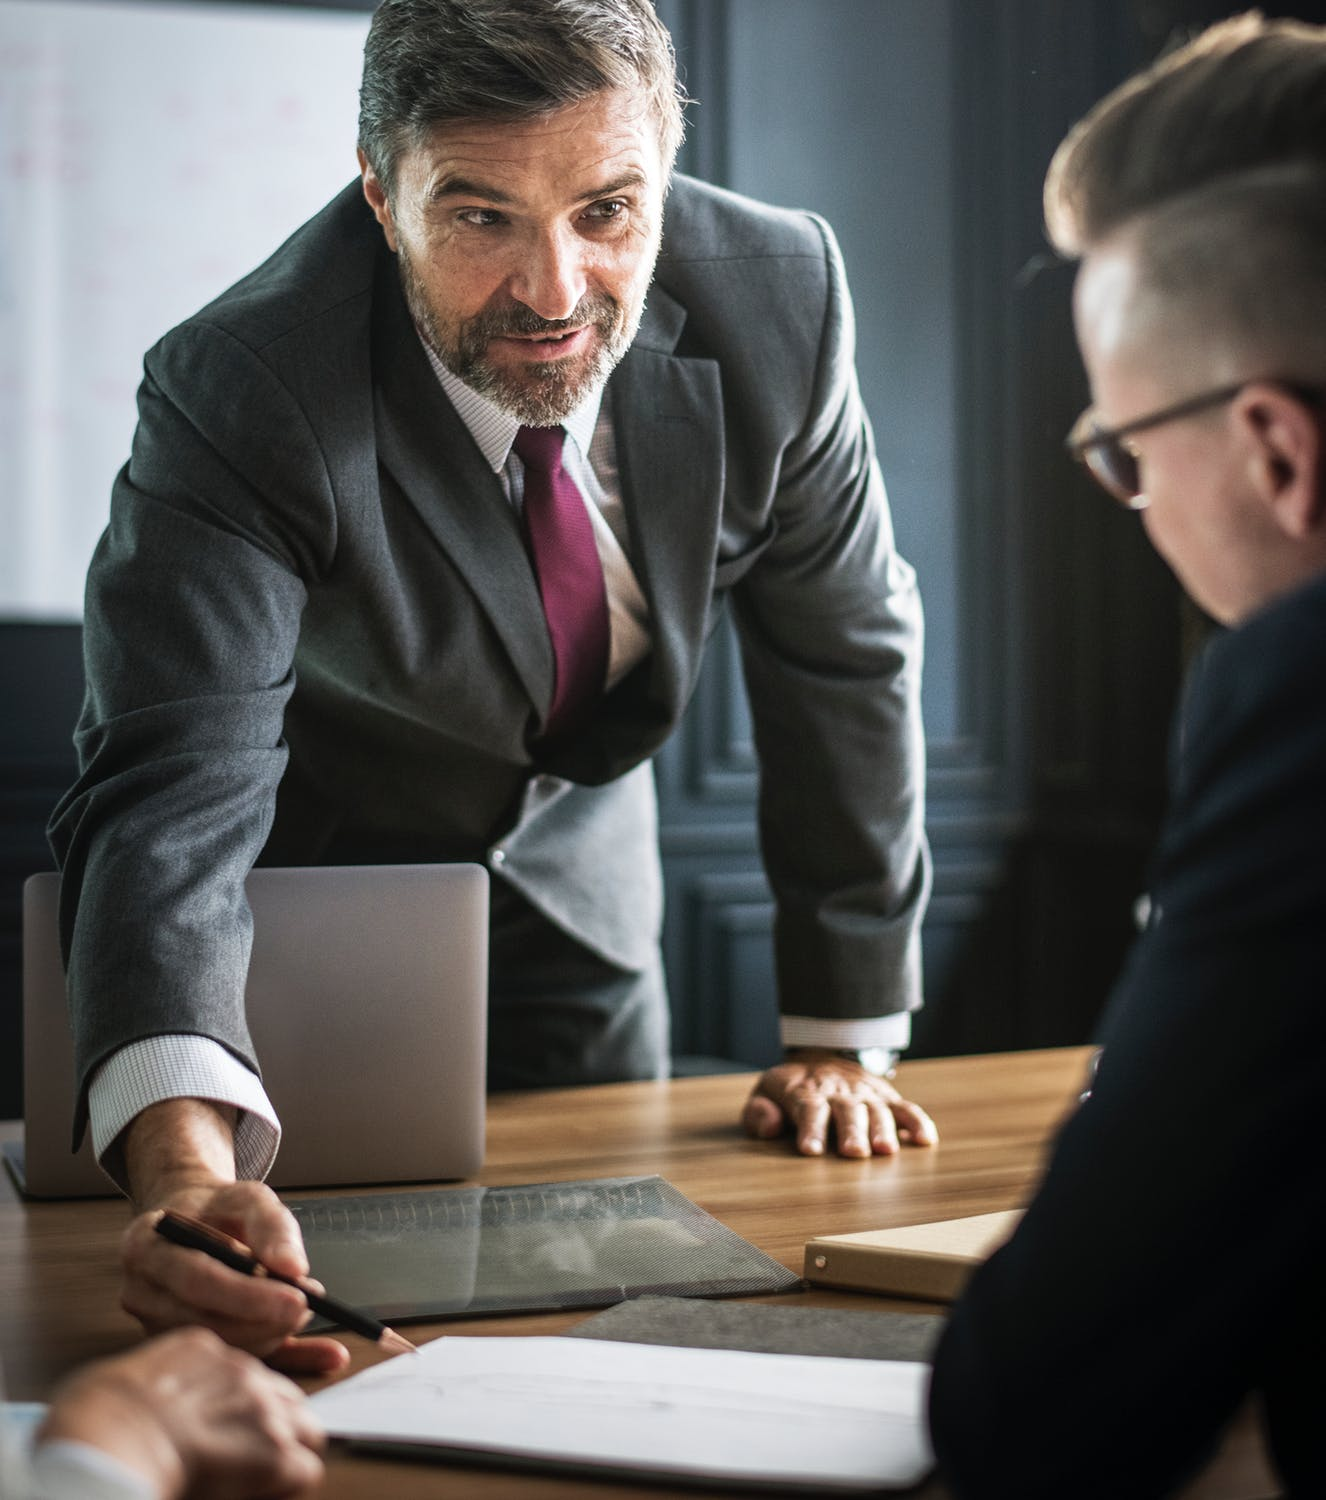 Set Your Managers up for a Great Start - Successful managers get results because they know how to balance their own strengths with their team's strengths to get the best results.